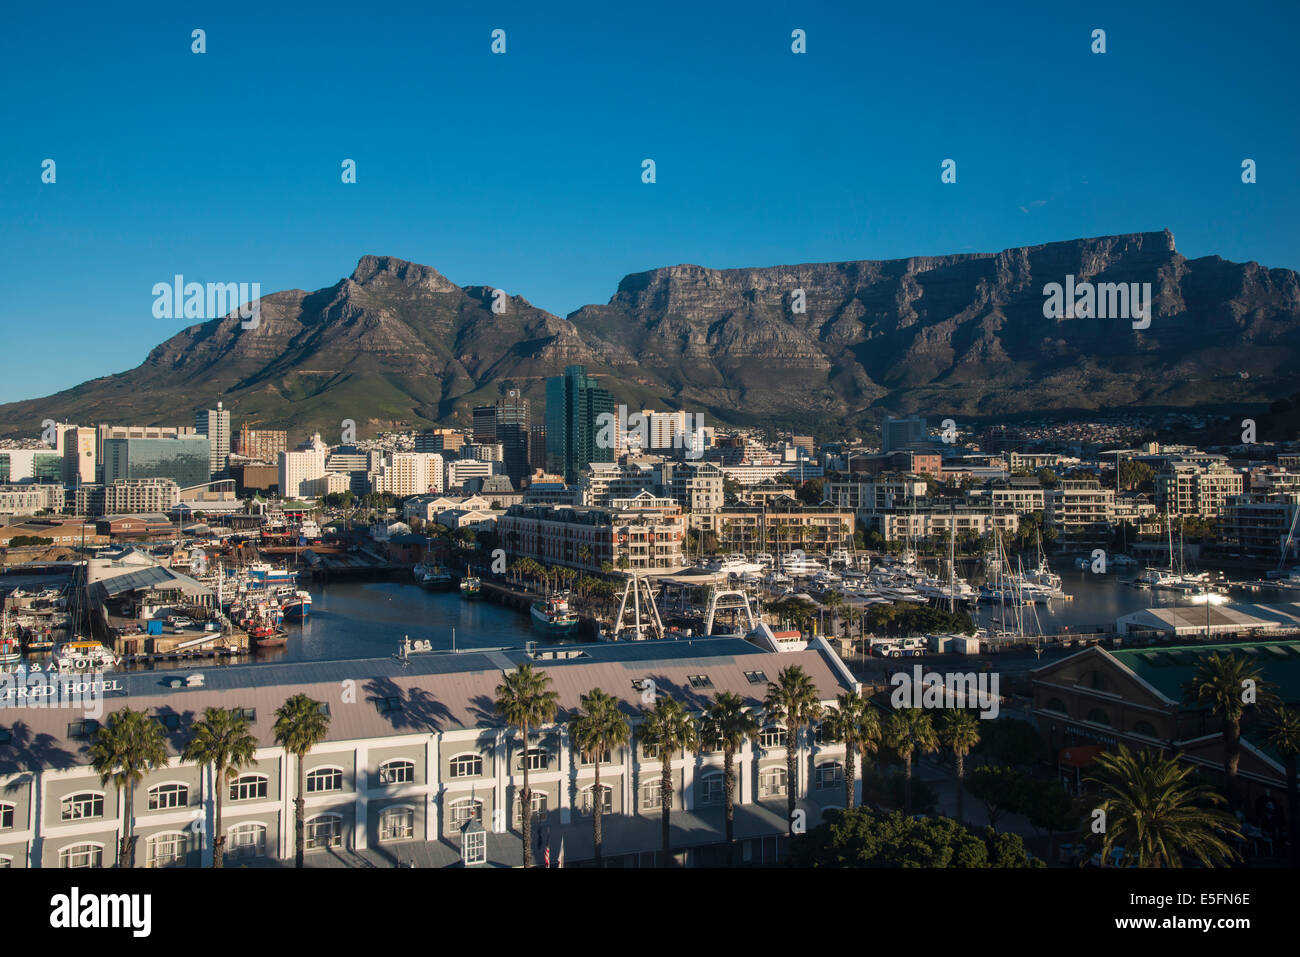 Victoria and Alfred Waterfront, from Cape Wheel, Devil's Peak and Table Mountain at the back, Cape Town, Western - Stock Image